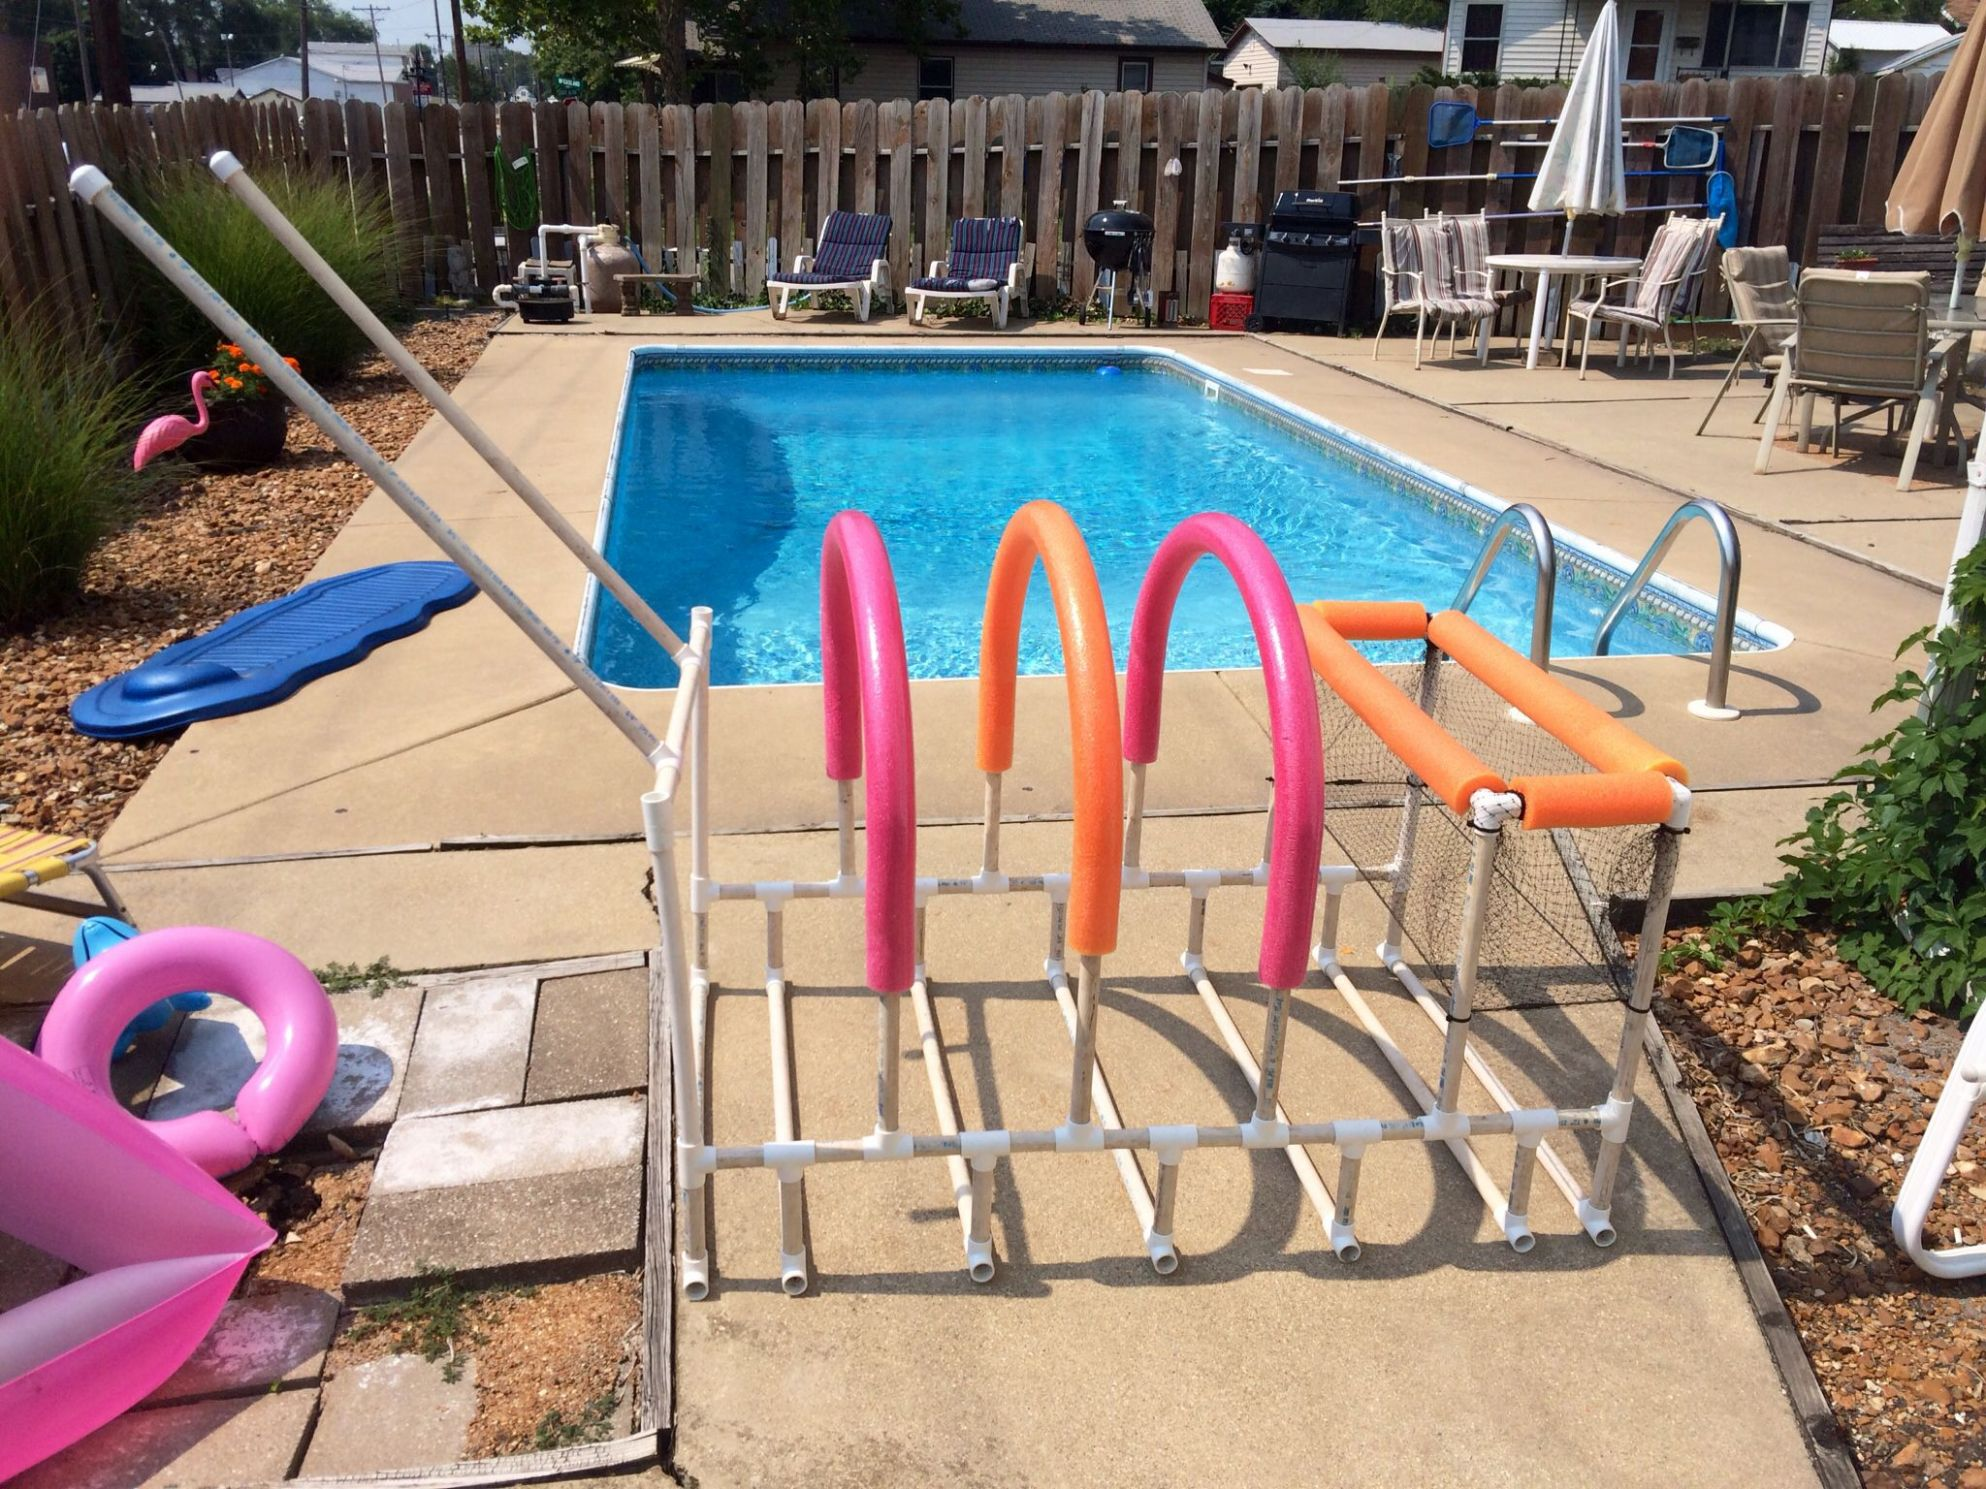 Nailed it! Poolside storage for rafts, toys, goggles, tubes, and ..